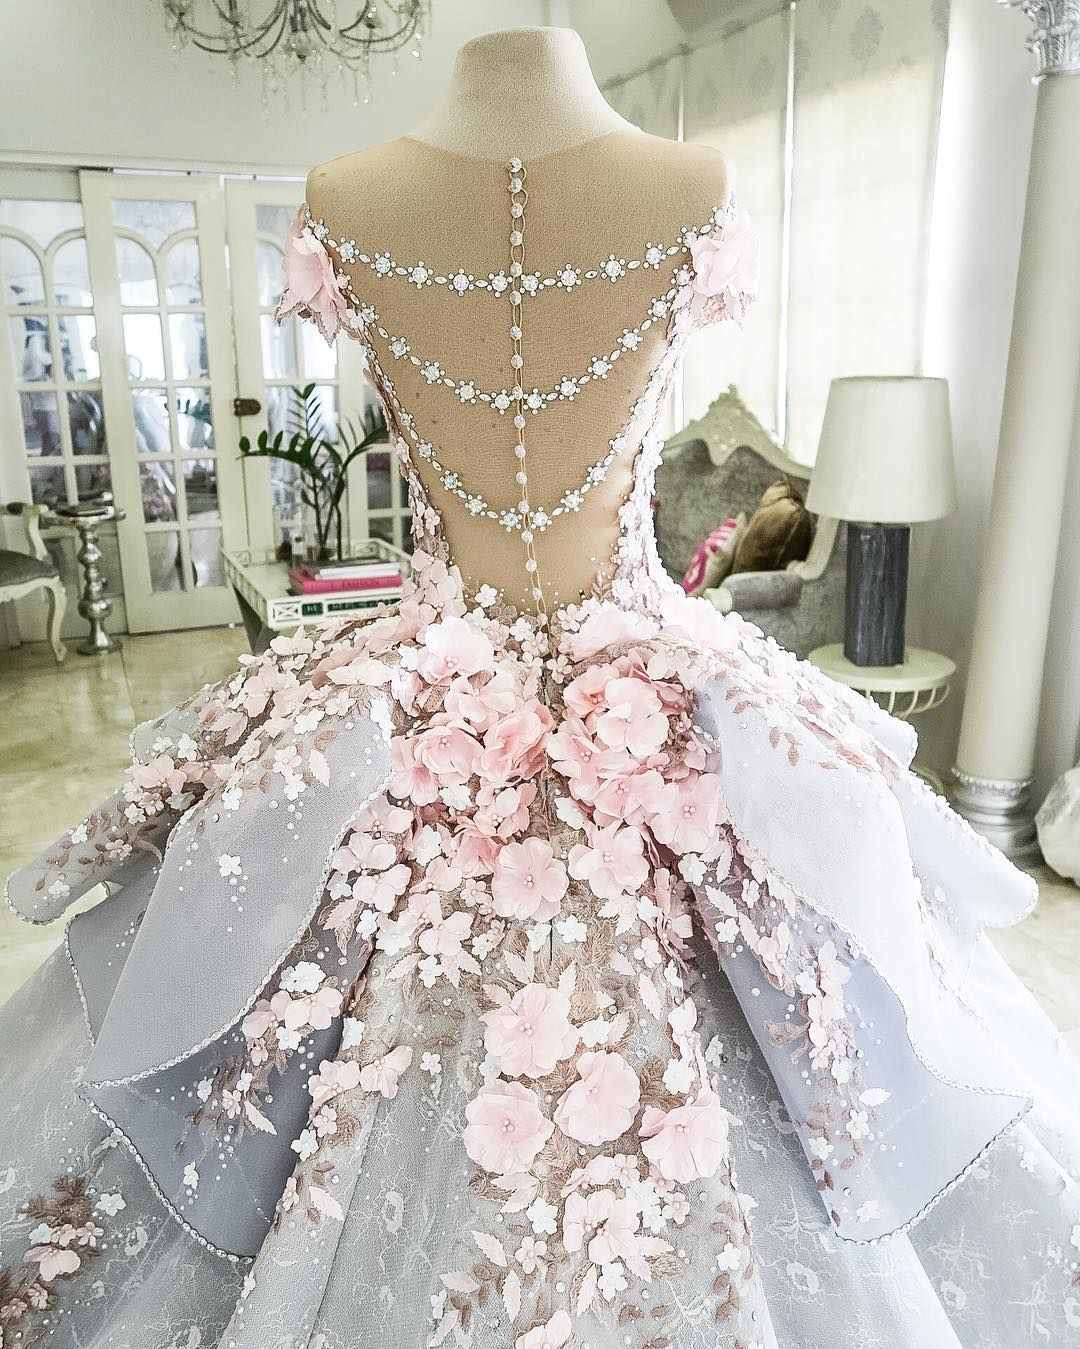 Amazing This is strangely reminding me of the Hunger Games wedding dress Katniss wore fused with the